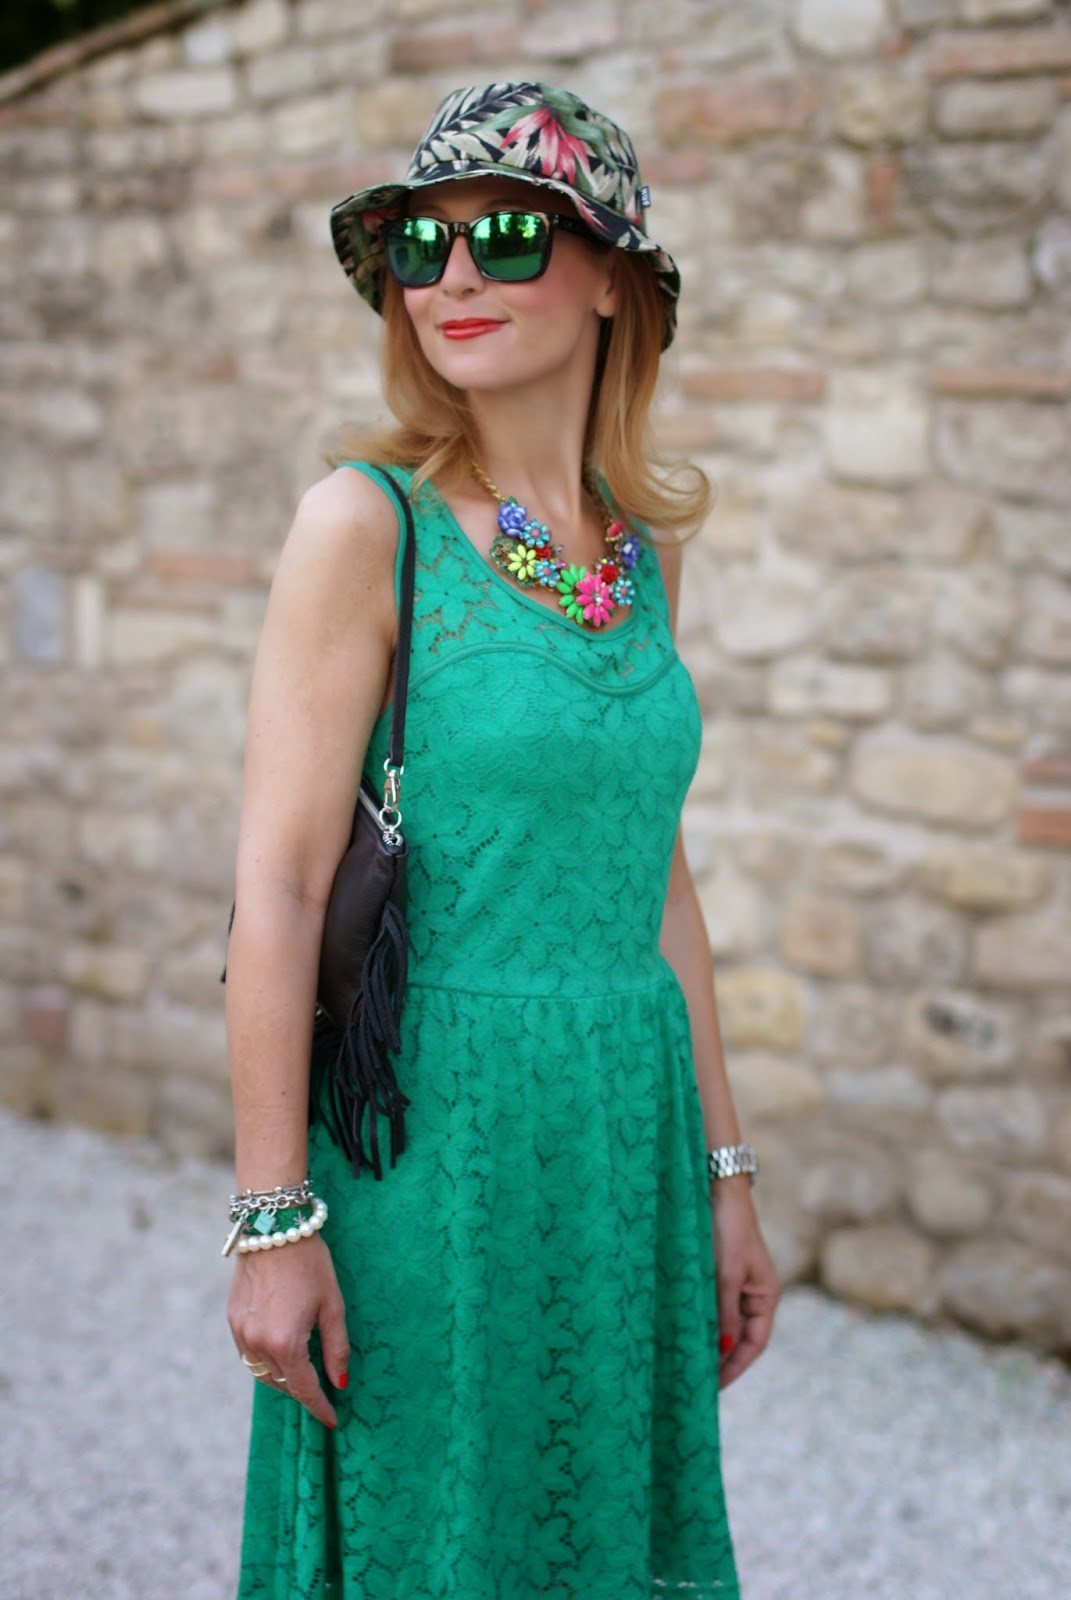 Morgan de toi green lace dress, no brand flowers necklace, fringed bag, tropical bob hat, oakley green sunglasses, Fashion and Cookies, fashion blogger